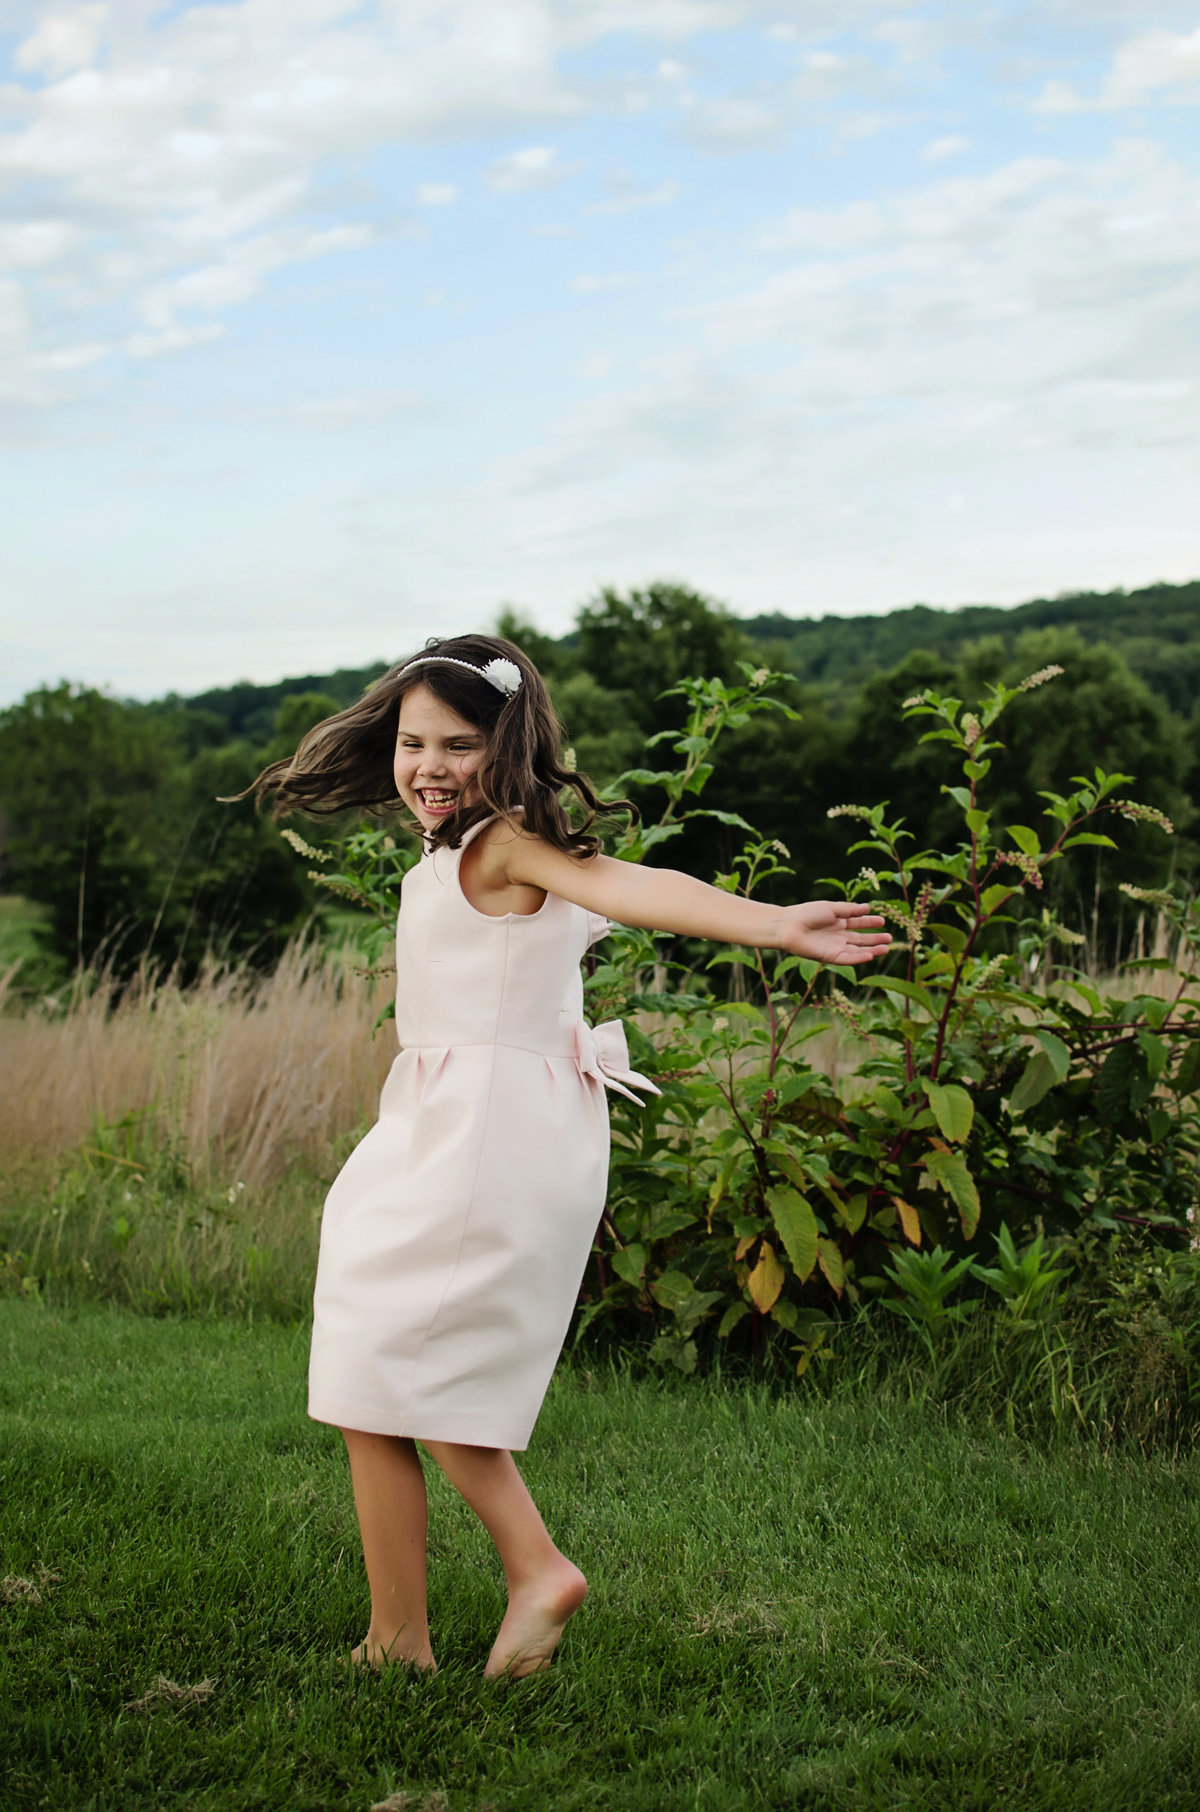 Portrait of a happy little girl twirling with puffy clouds in Northern Virginia taken by Sarah Alice Photography